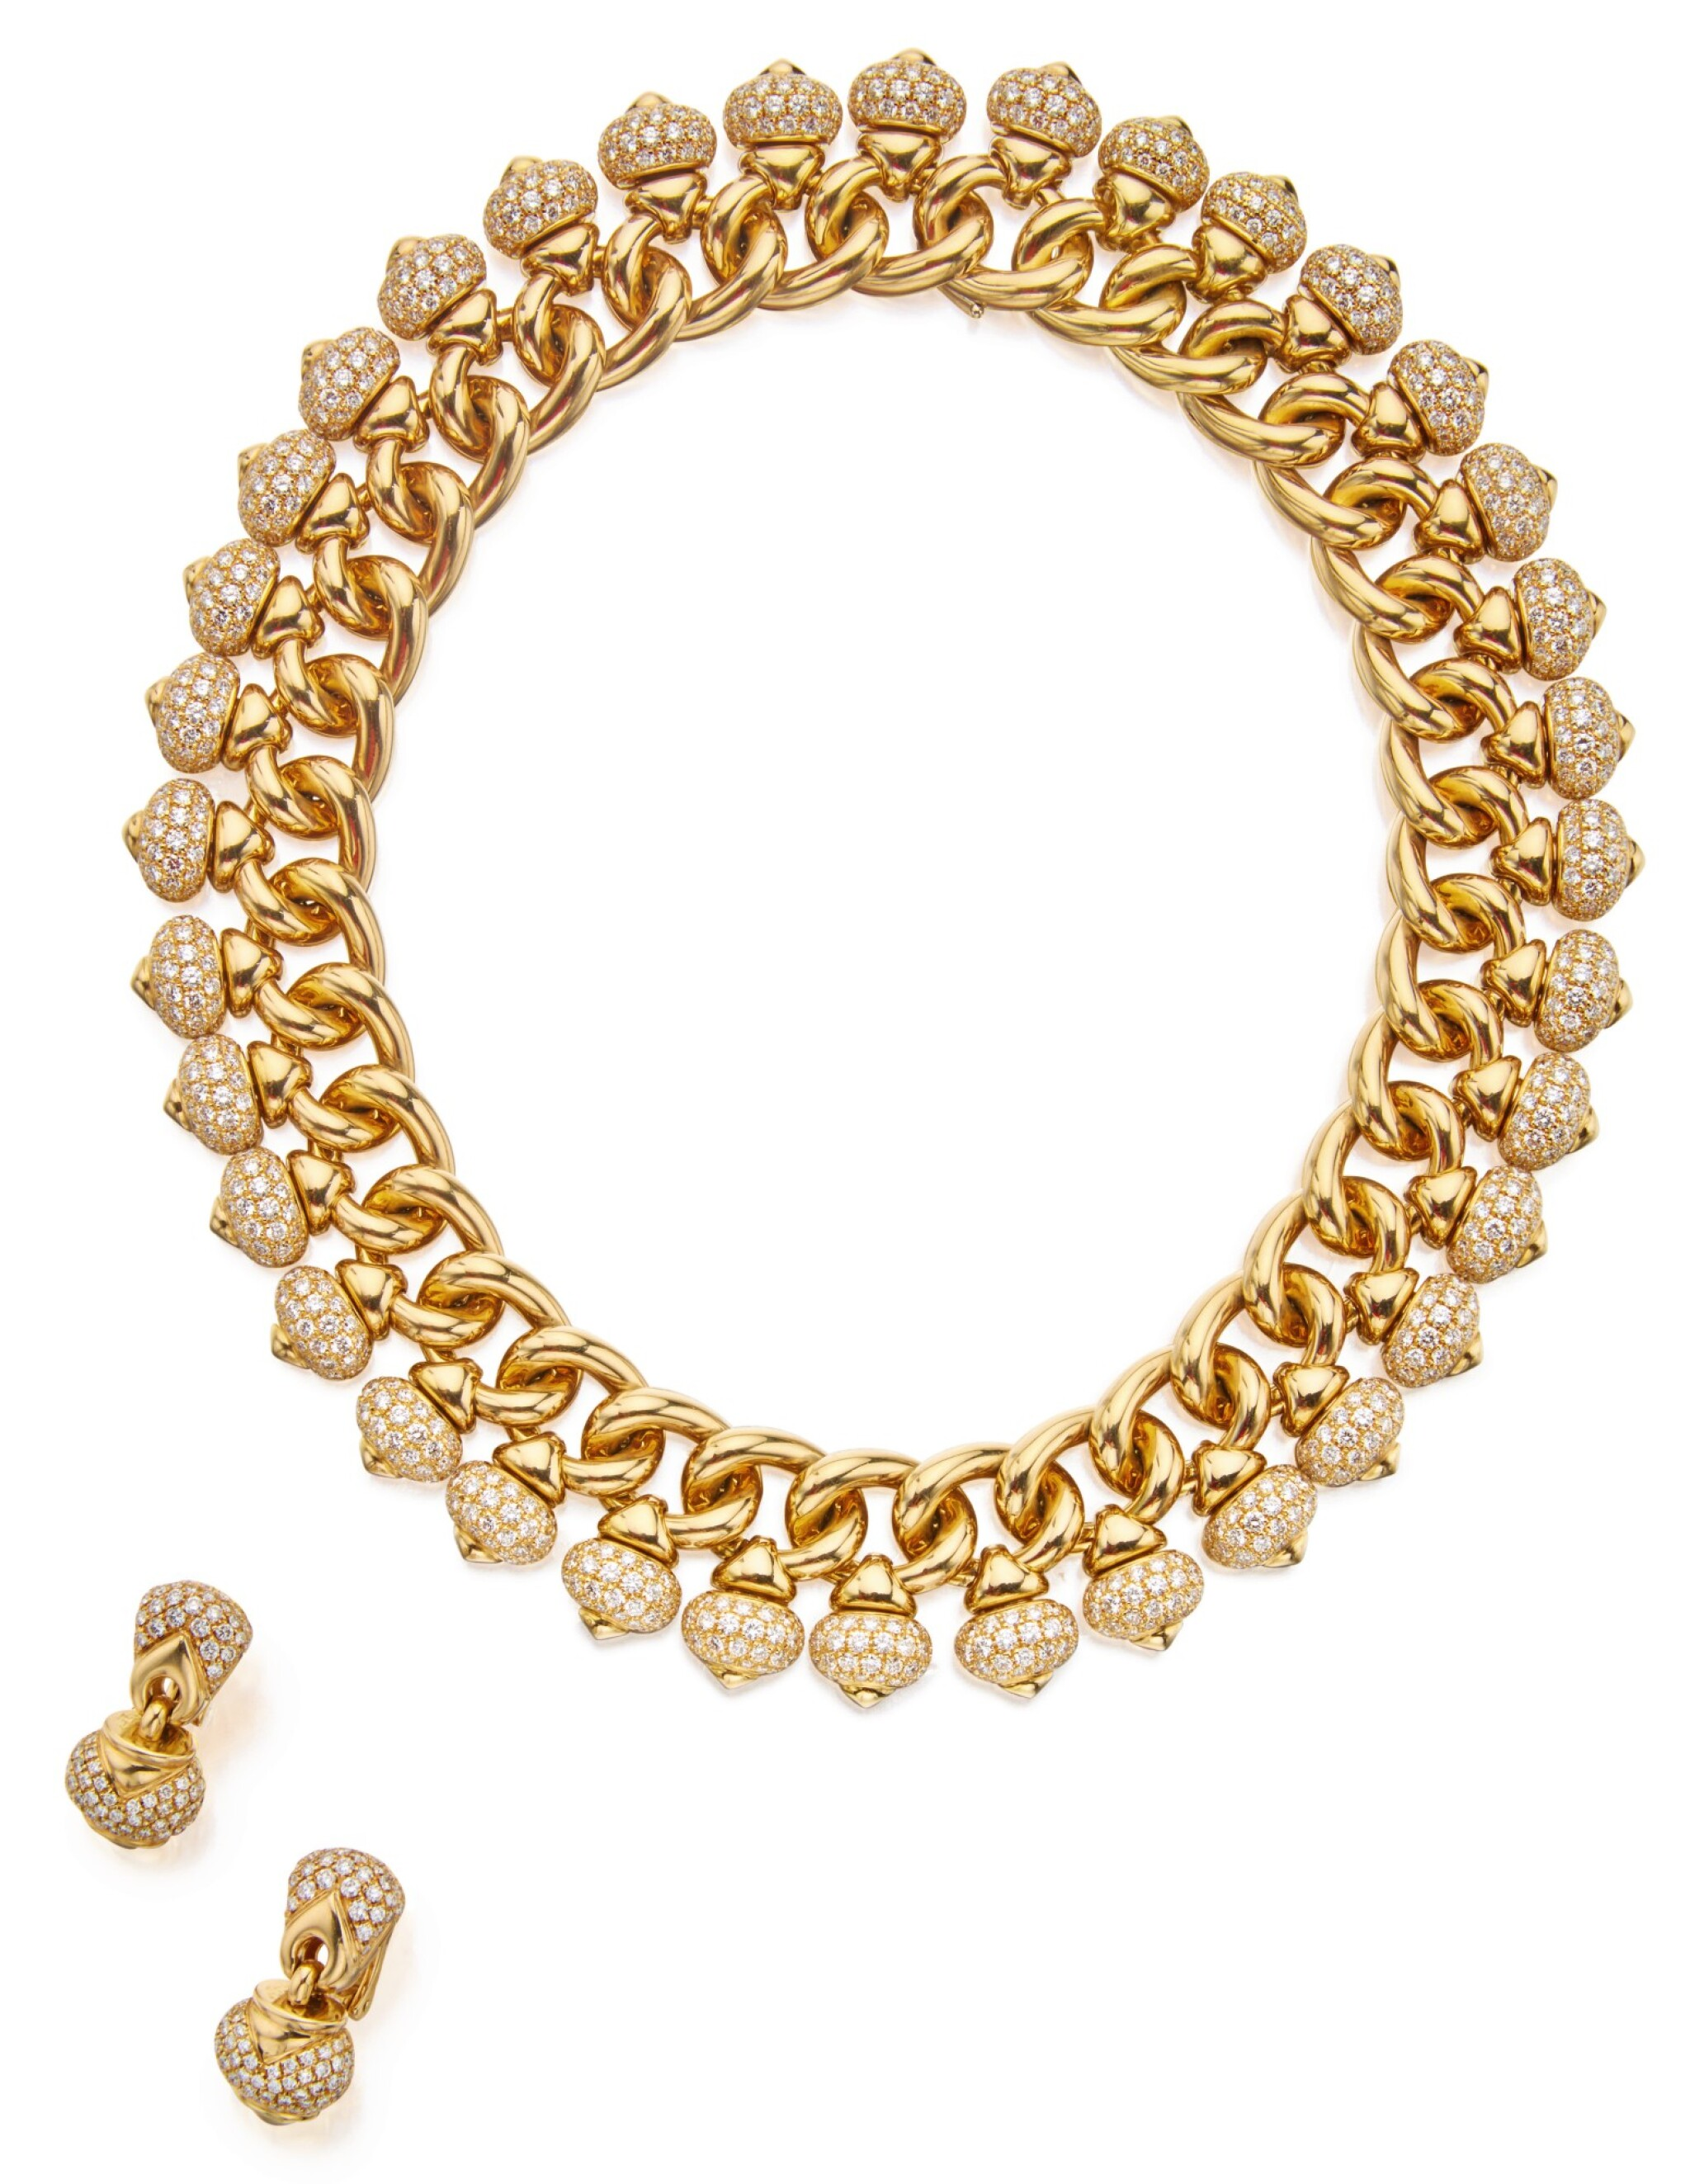 View 1 of Lot 354. GOLD AND DIAMOND 'PIGNE' NECKLACE AND PAIR OF EARCLIPS, BULGARI.